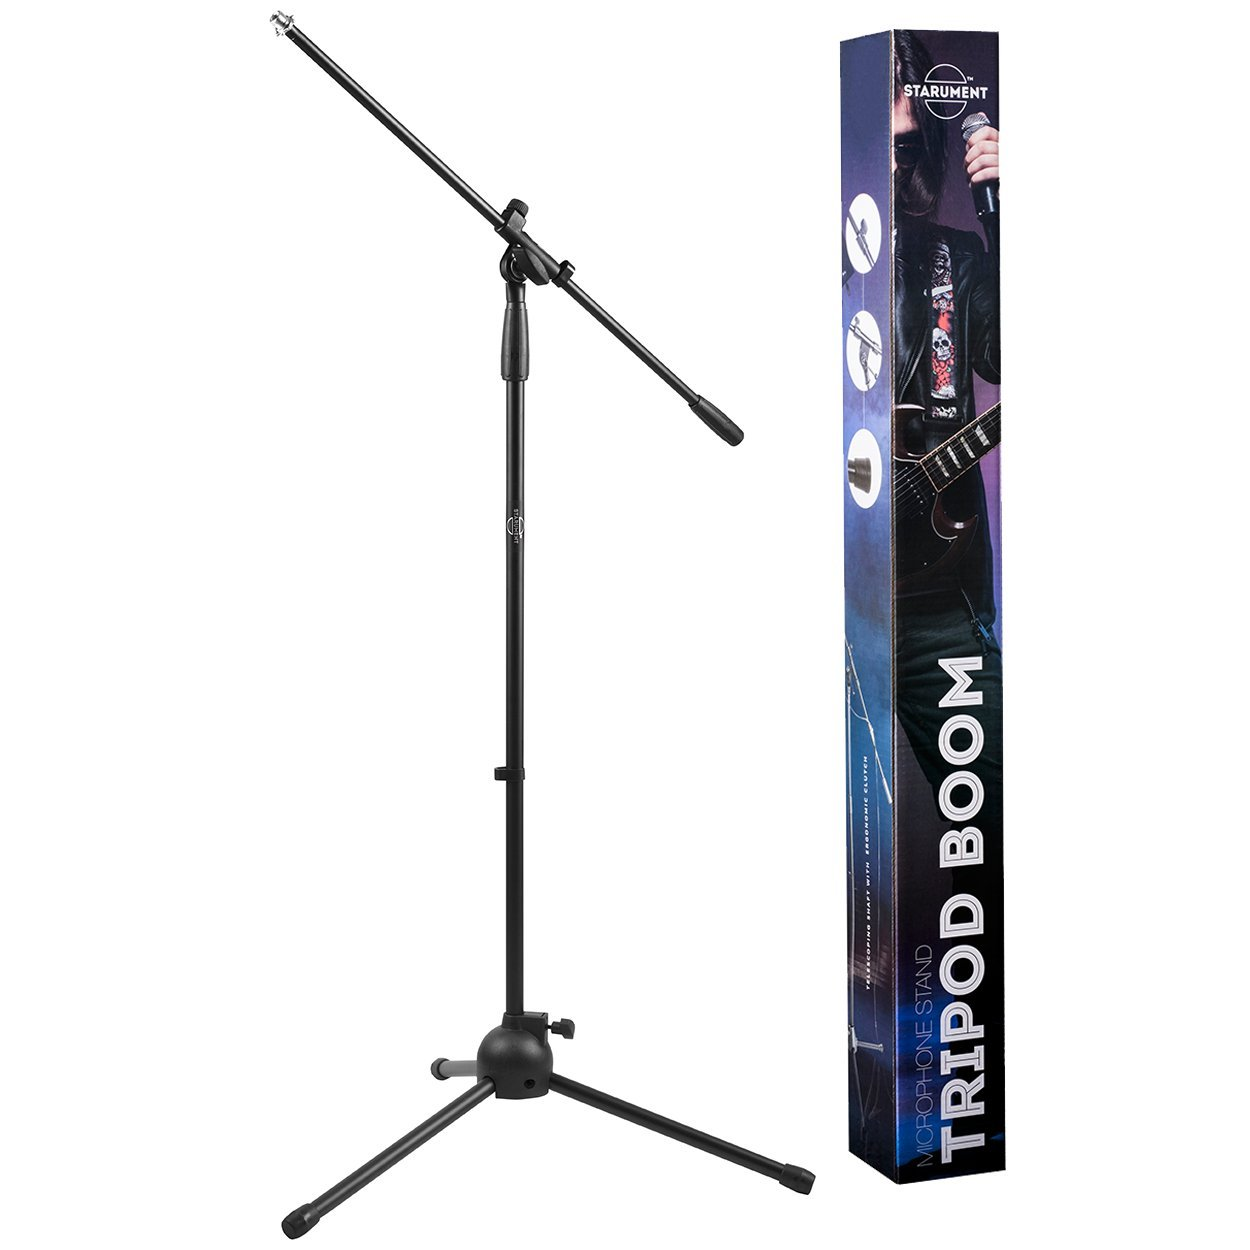 Tripod Boom Microphone Stand   Perfect for Professional and Aspiring Musicians, Stage Performances, Home Studio Recordings   Lightweight, Robust Professional Microphone Stand   Mic Clip Incl